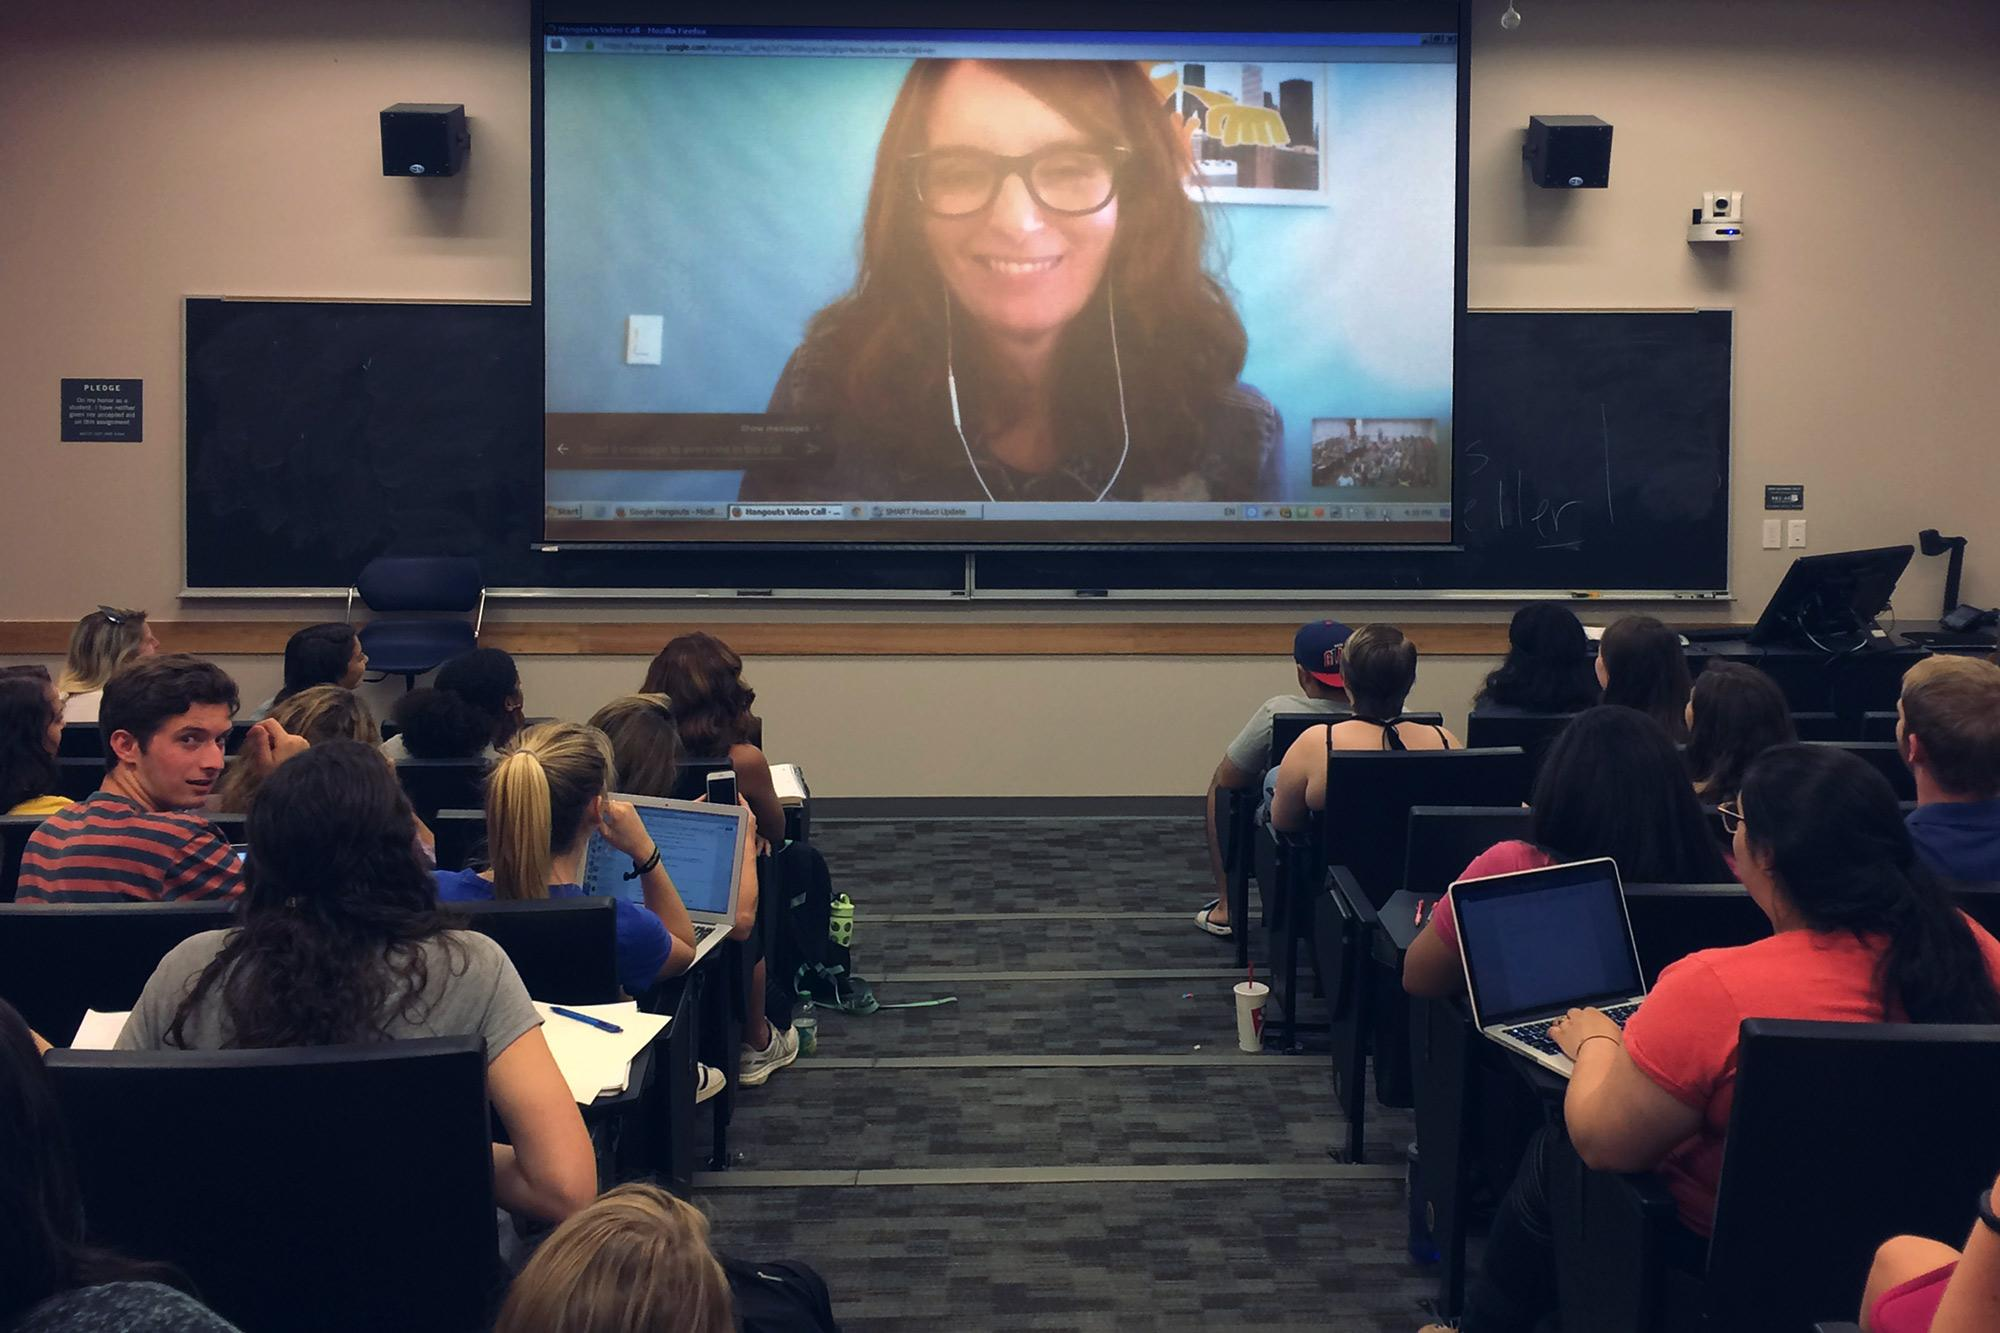 Students' last day of class included a surprise virtual visitor: Tina Fey.